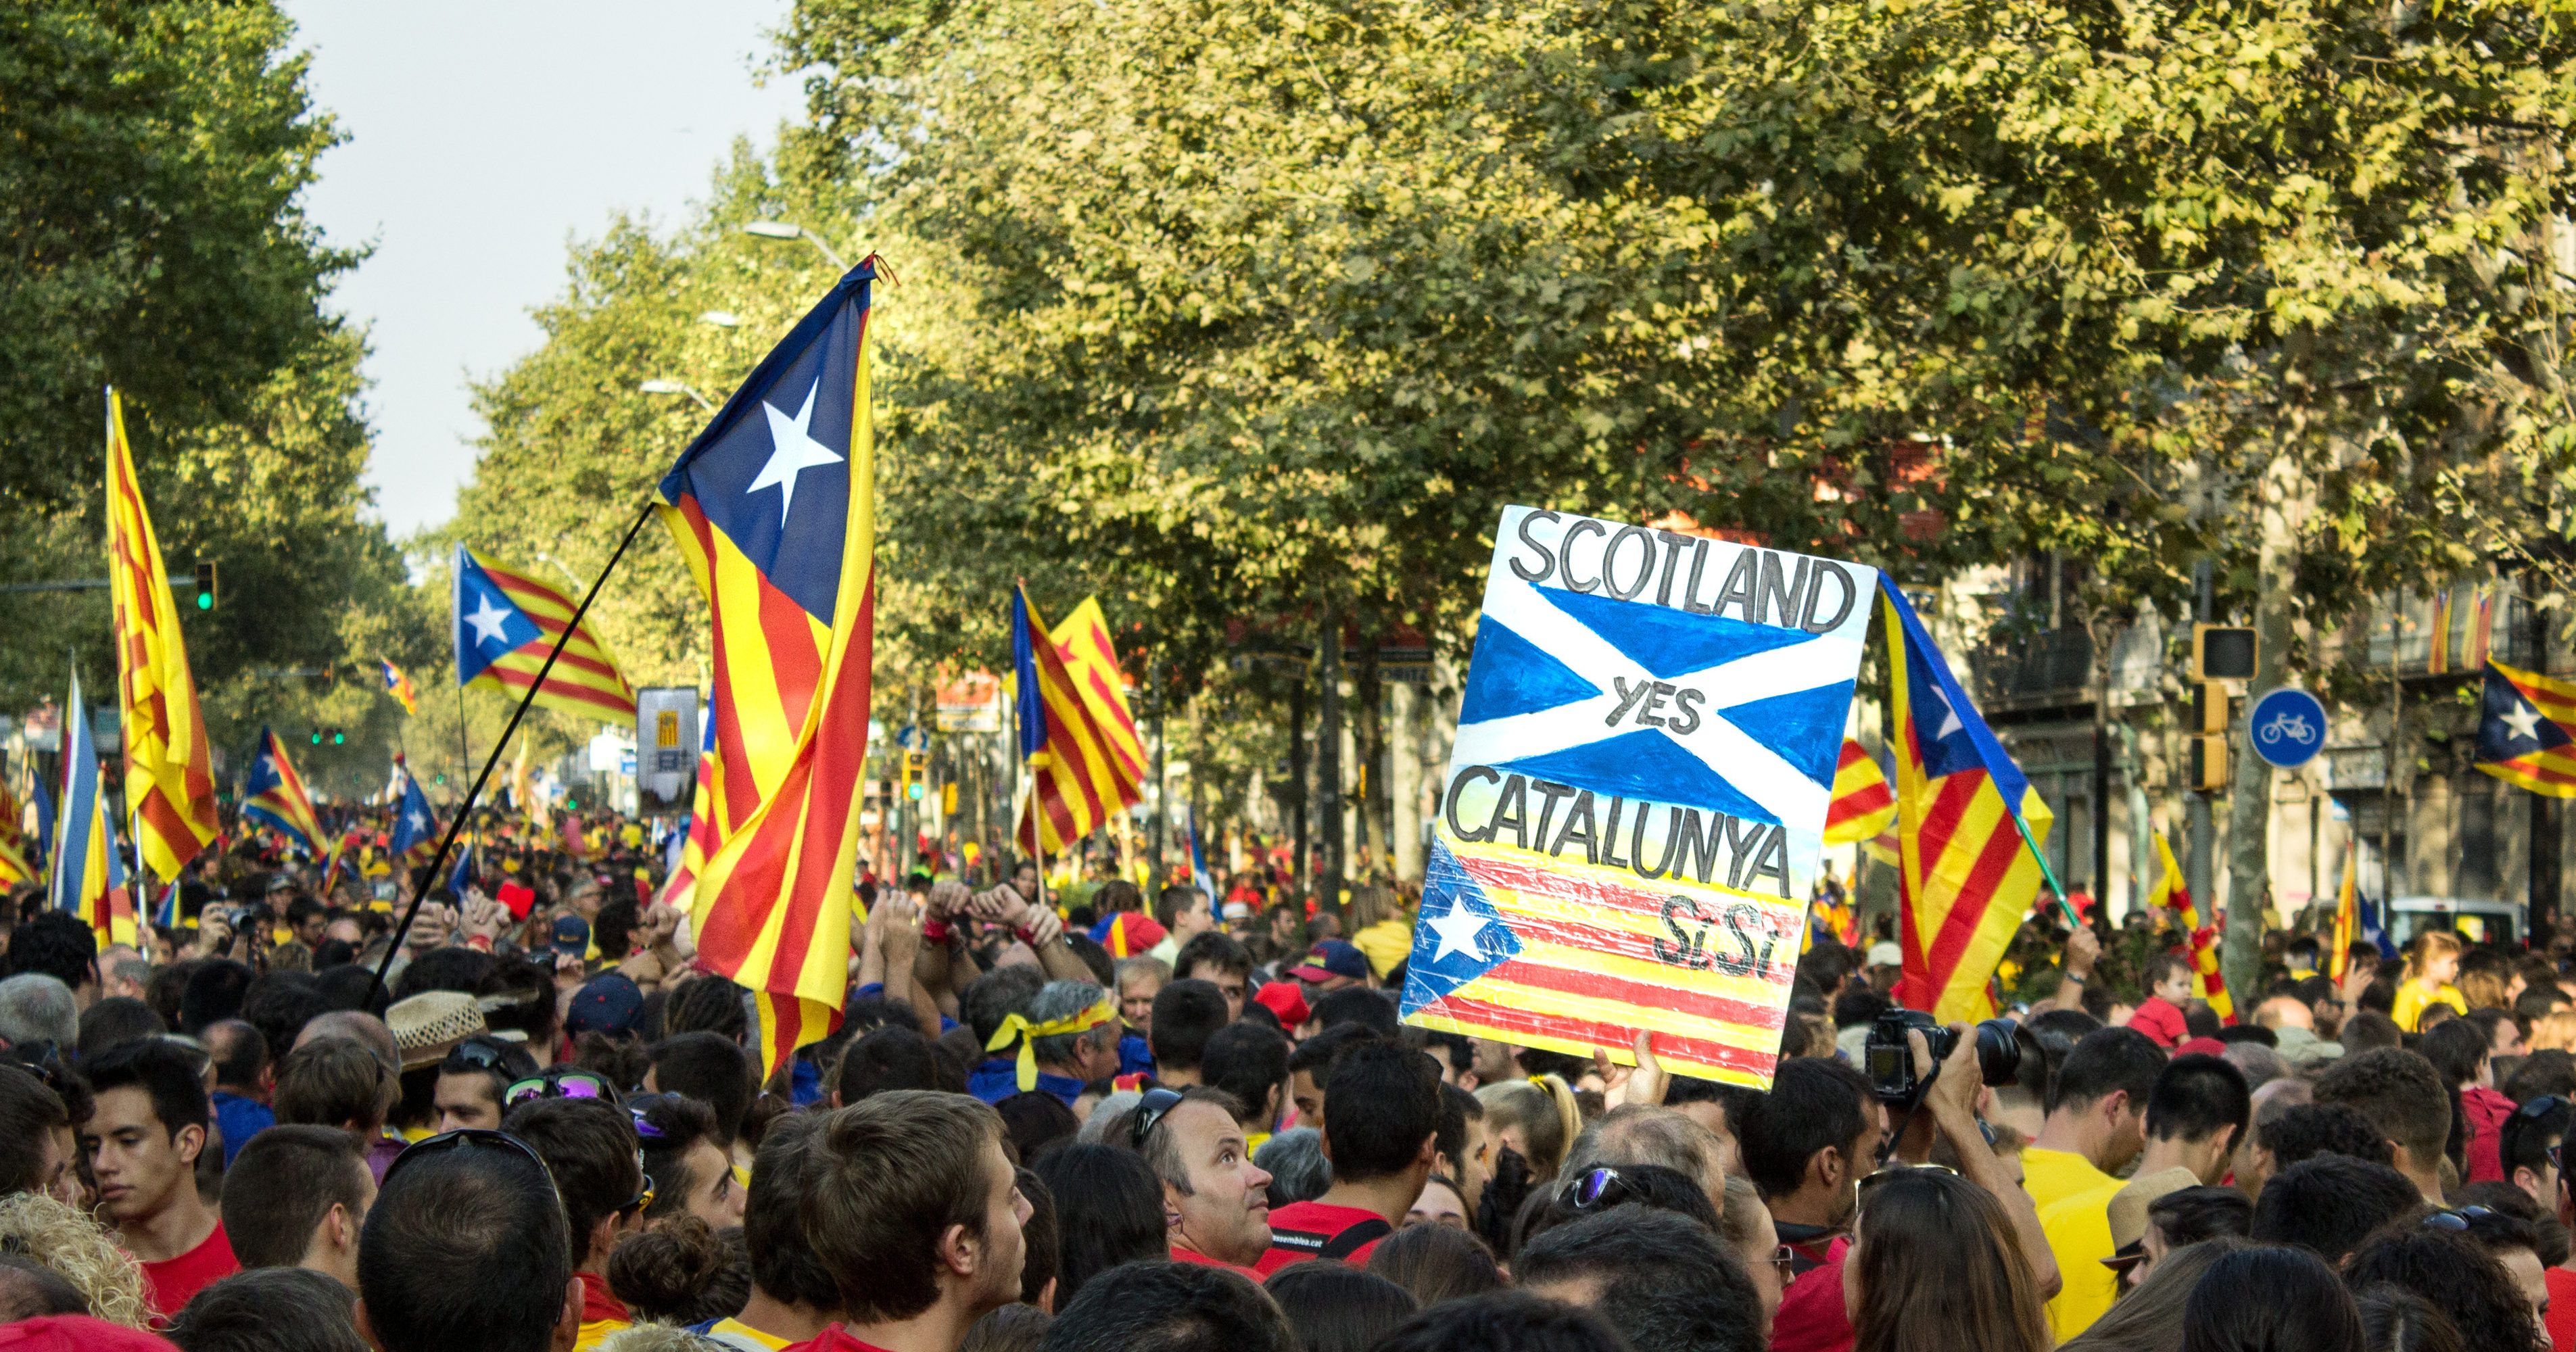 independence, Why we'll not support Catalan independence – UK, EU, Latest Nigeria News, Daily Devotionals & Celebrity Gossips - Chidispalace